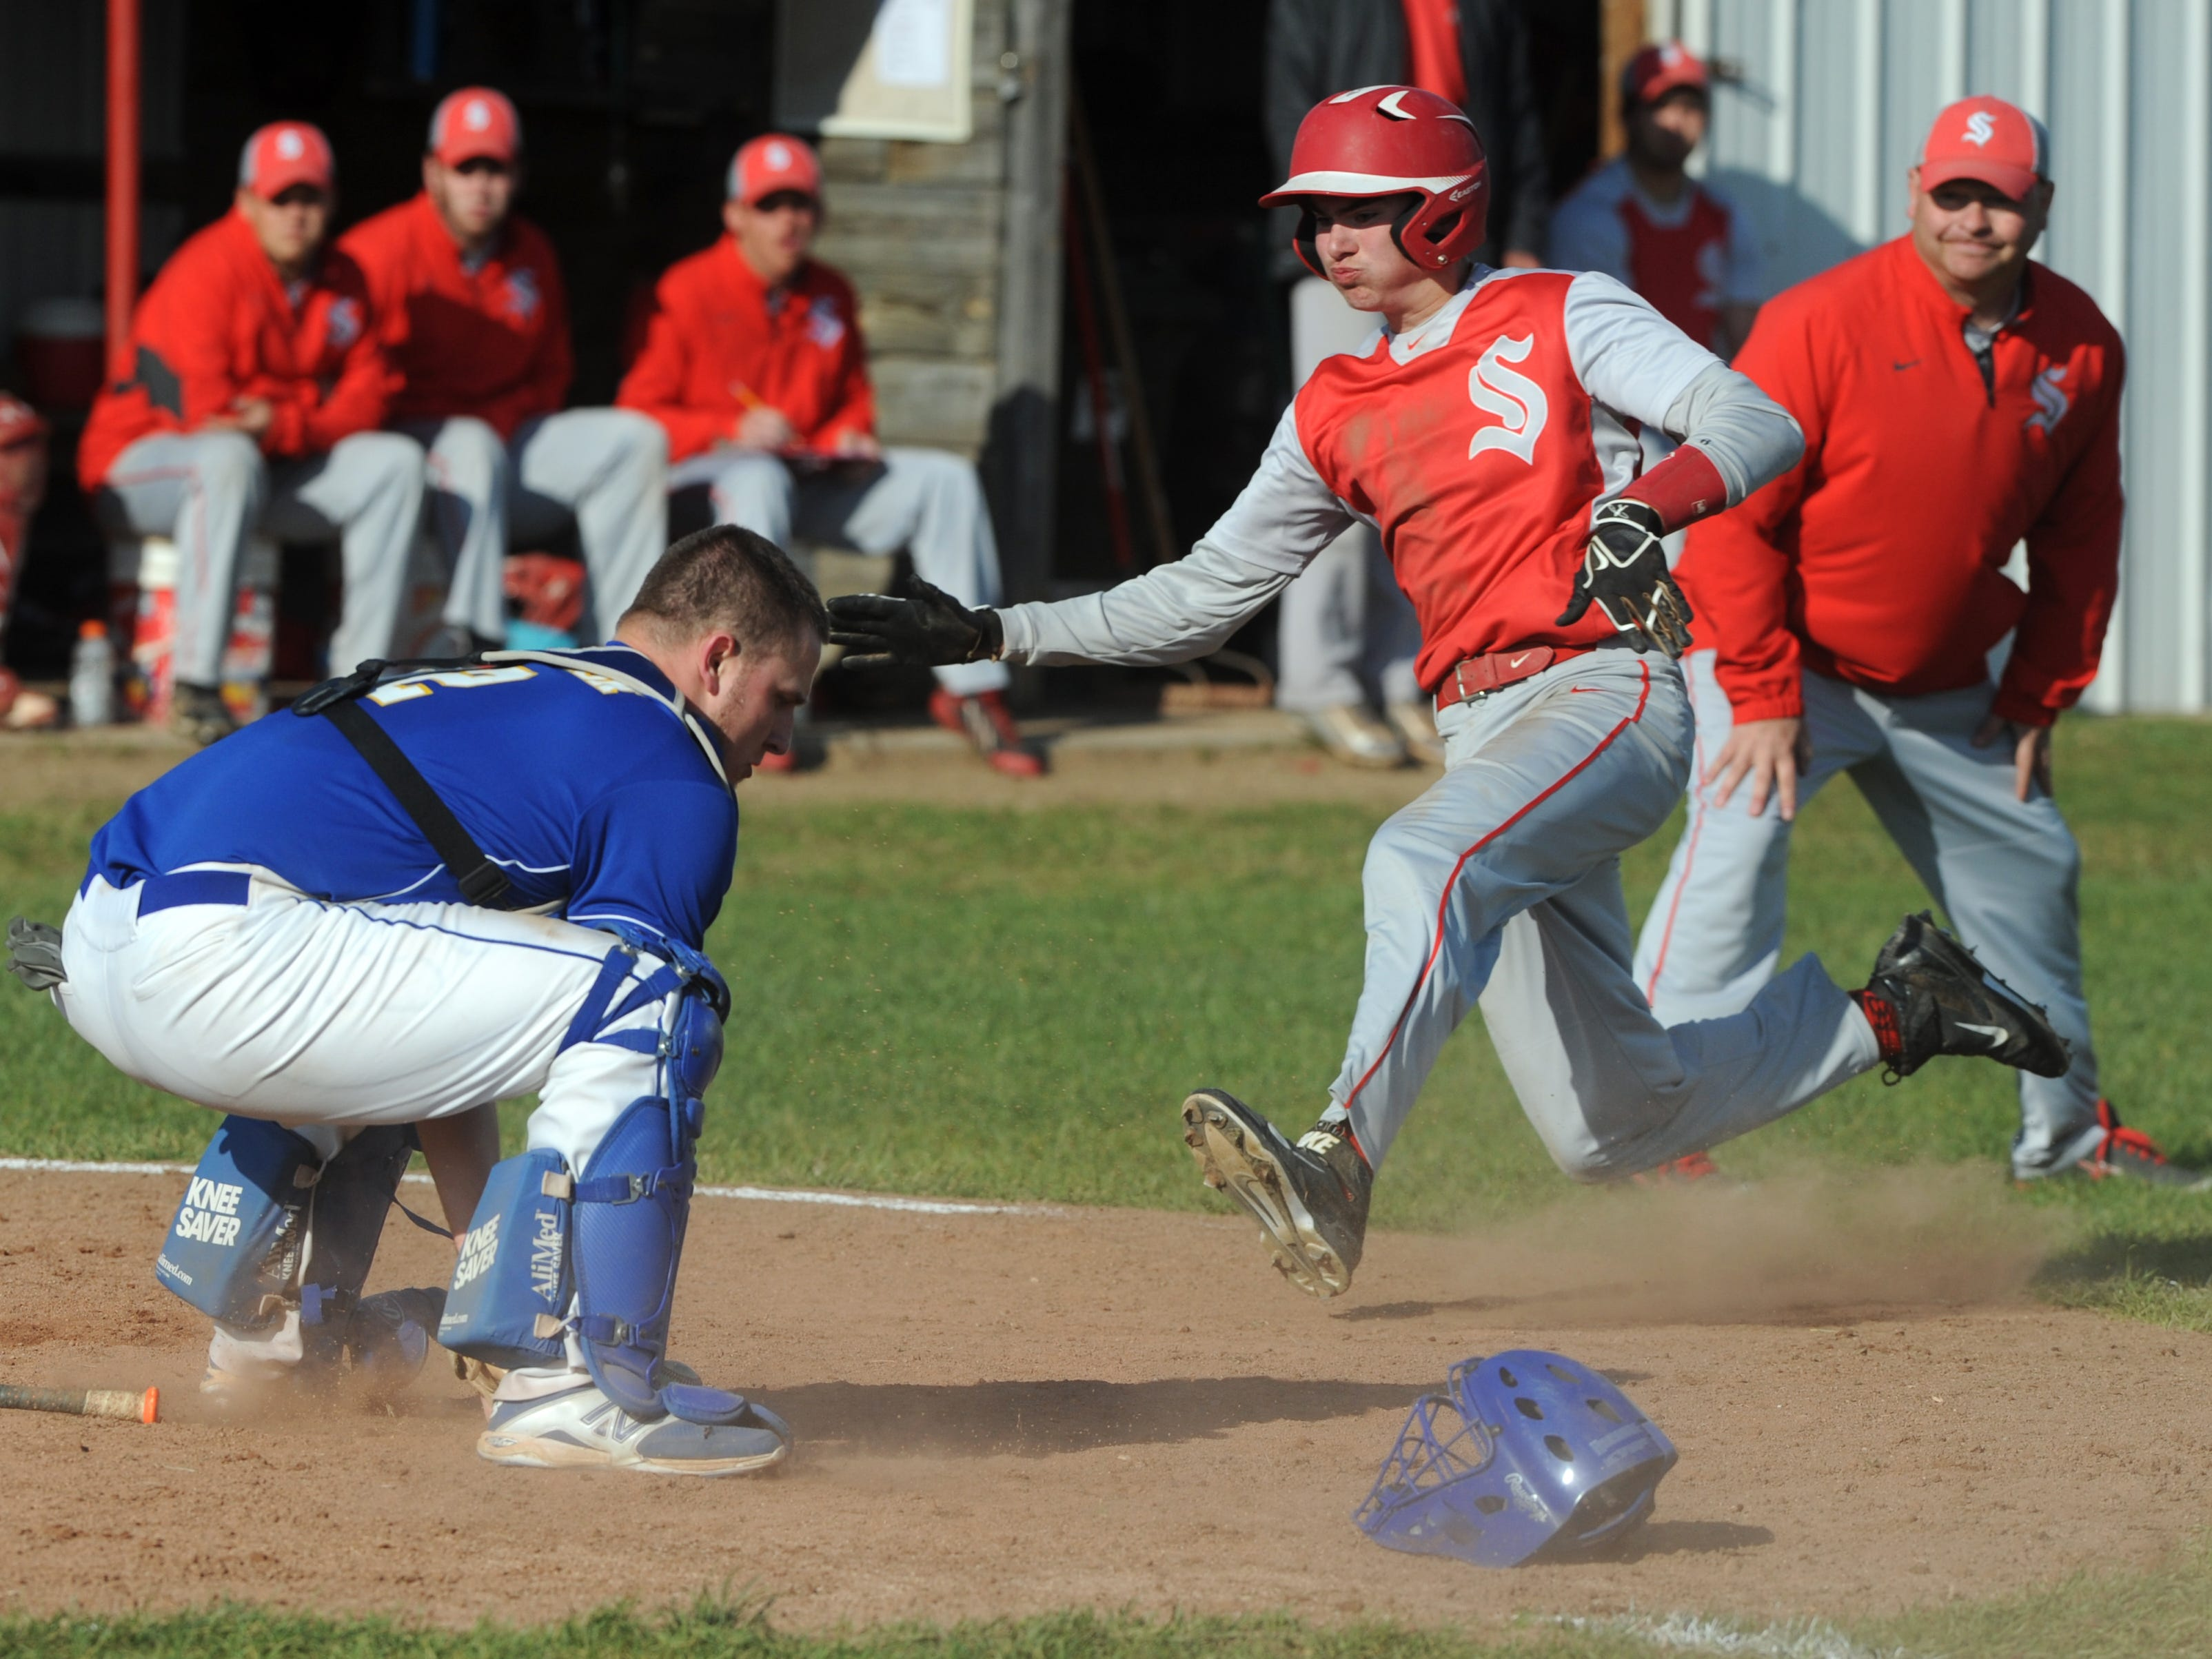 Sheridan's Collin Conrad races past Philo's Jacob Newton to score a run in the fifth inning of a game Thursday at Sheridan High School in Thornville.